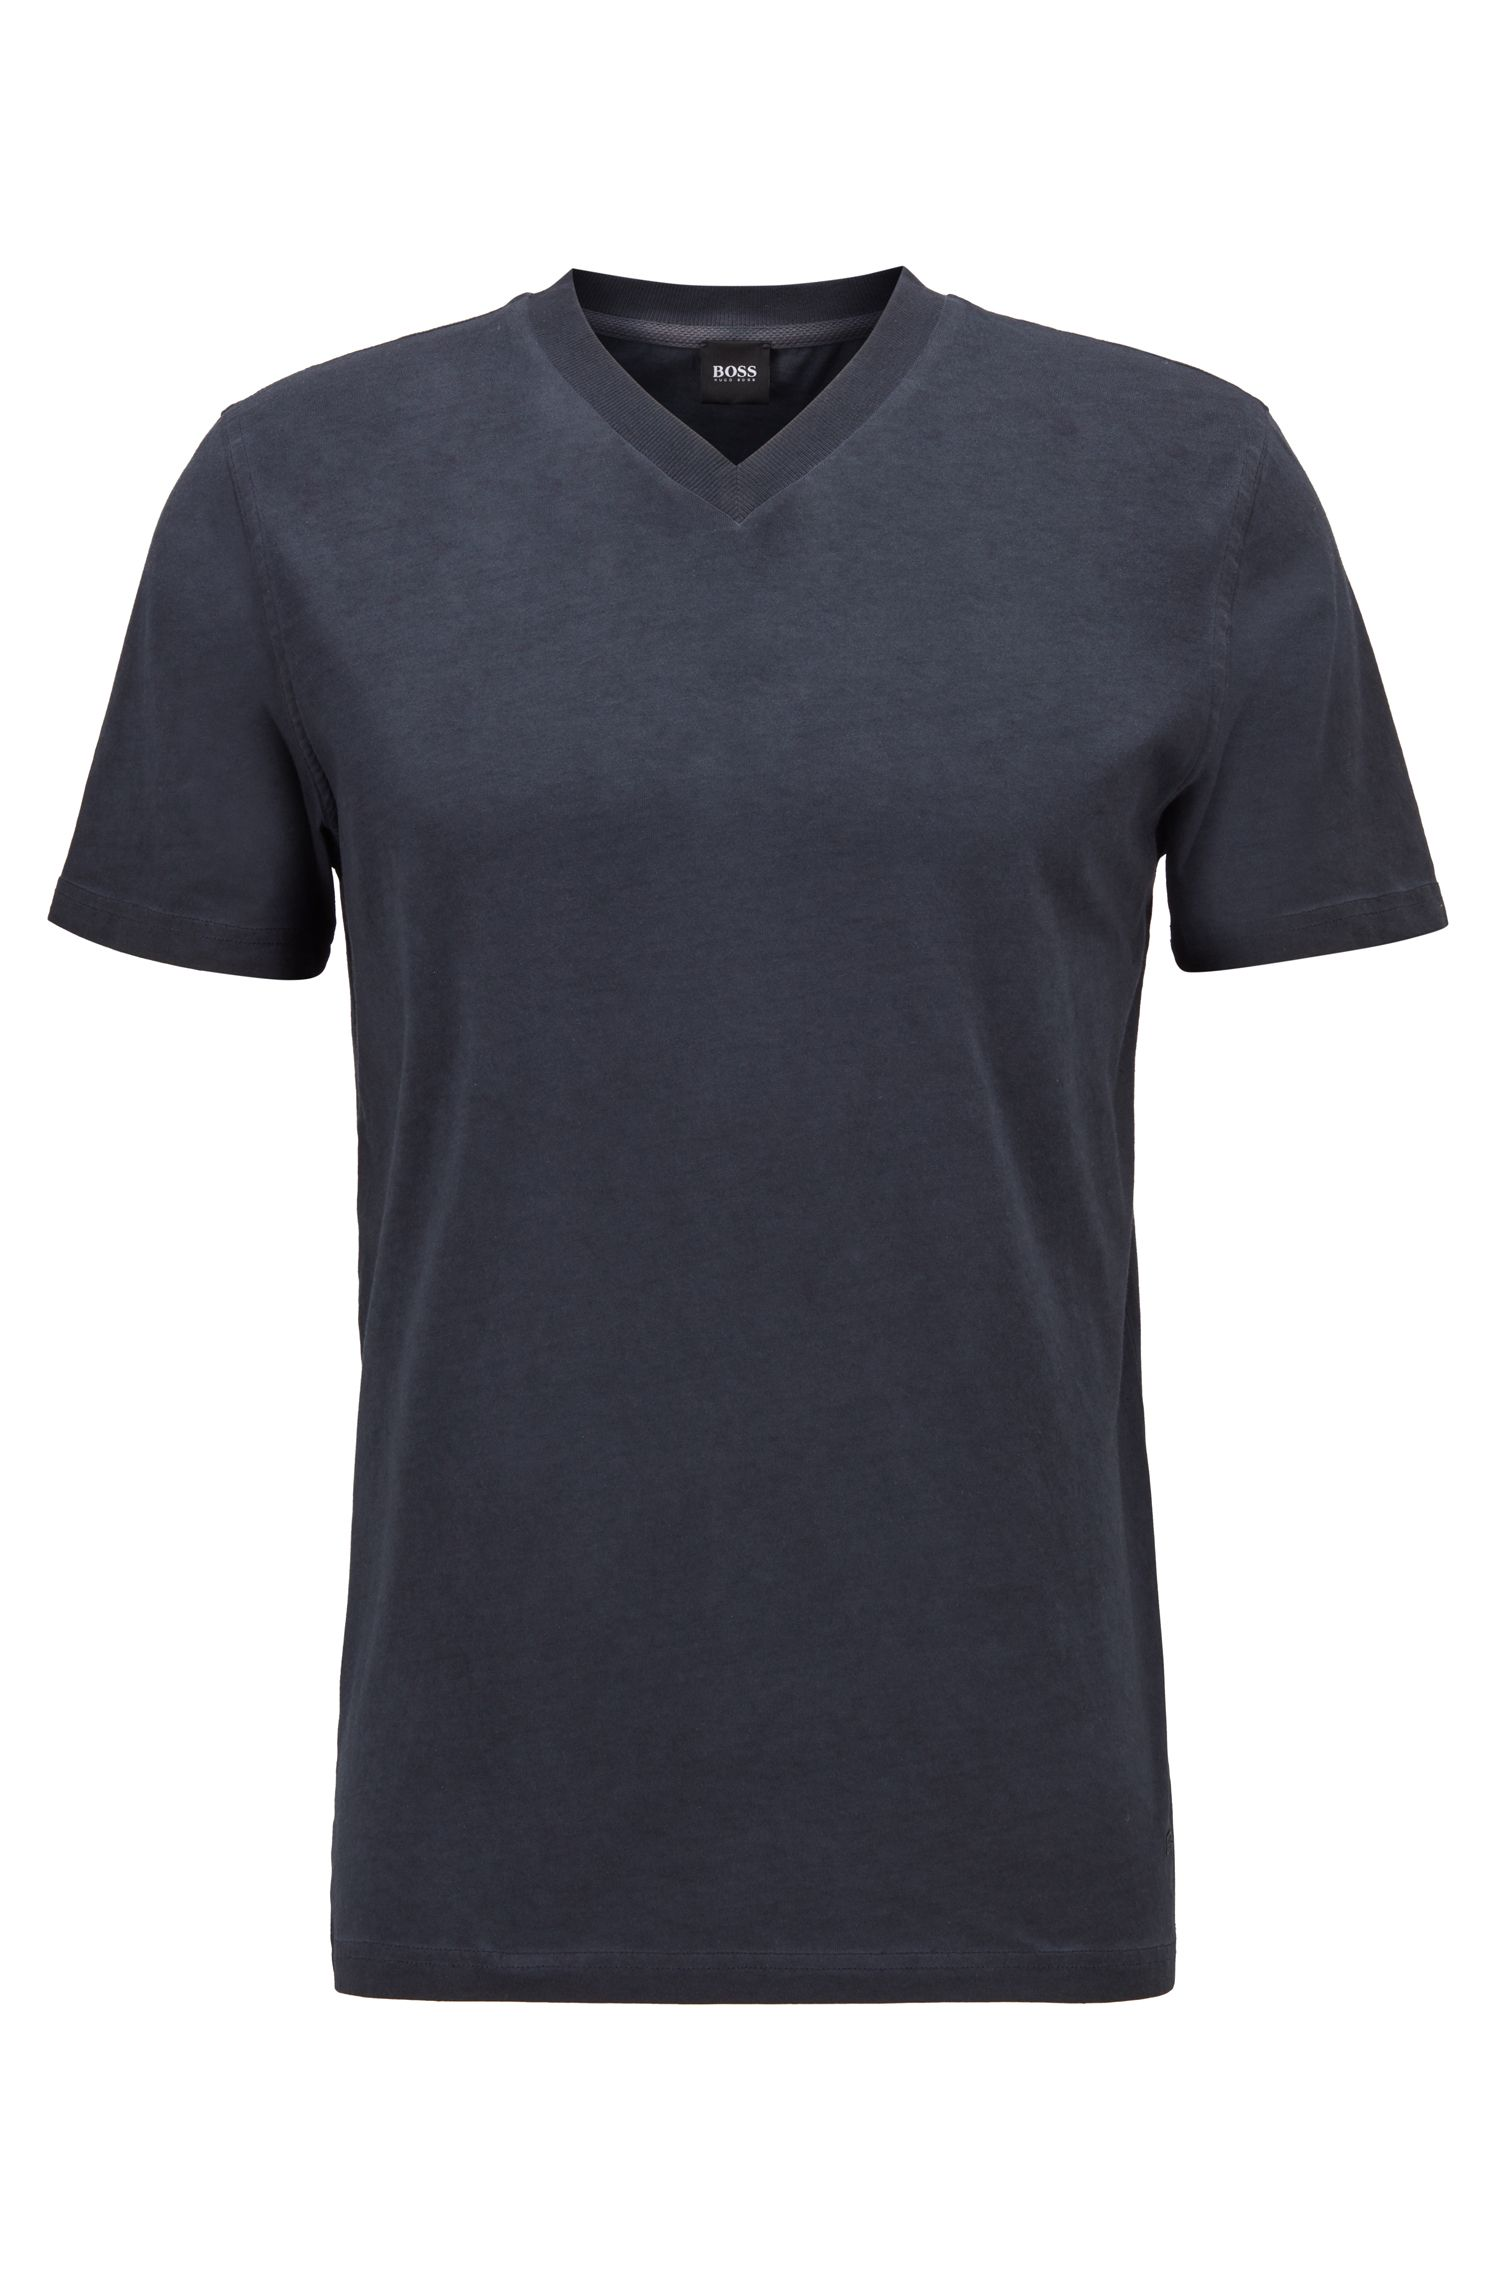 Regular-fit T-shirt in garment-dyed cotton jersey, Dark Blue